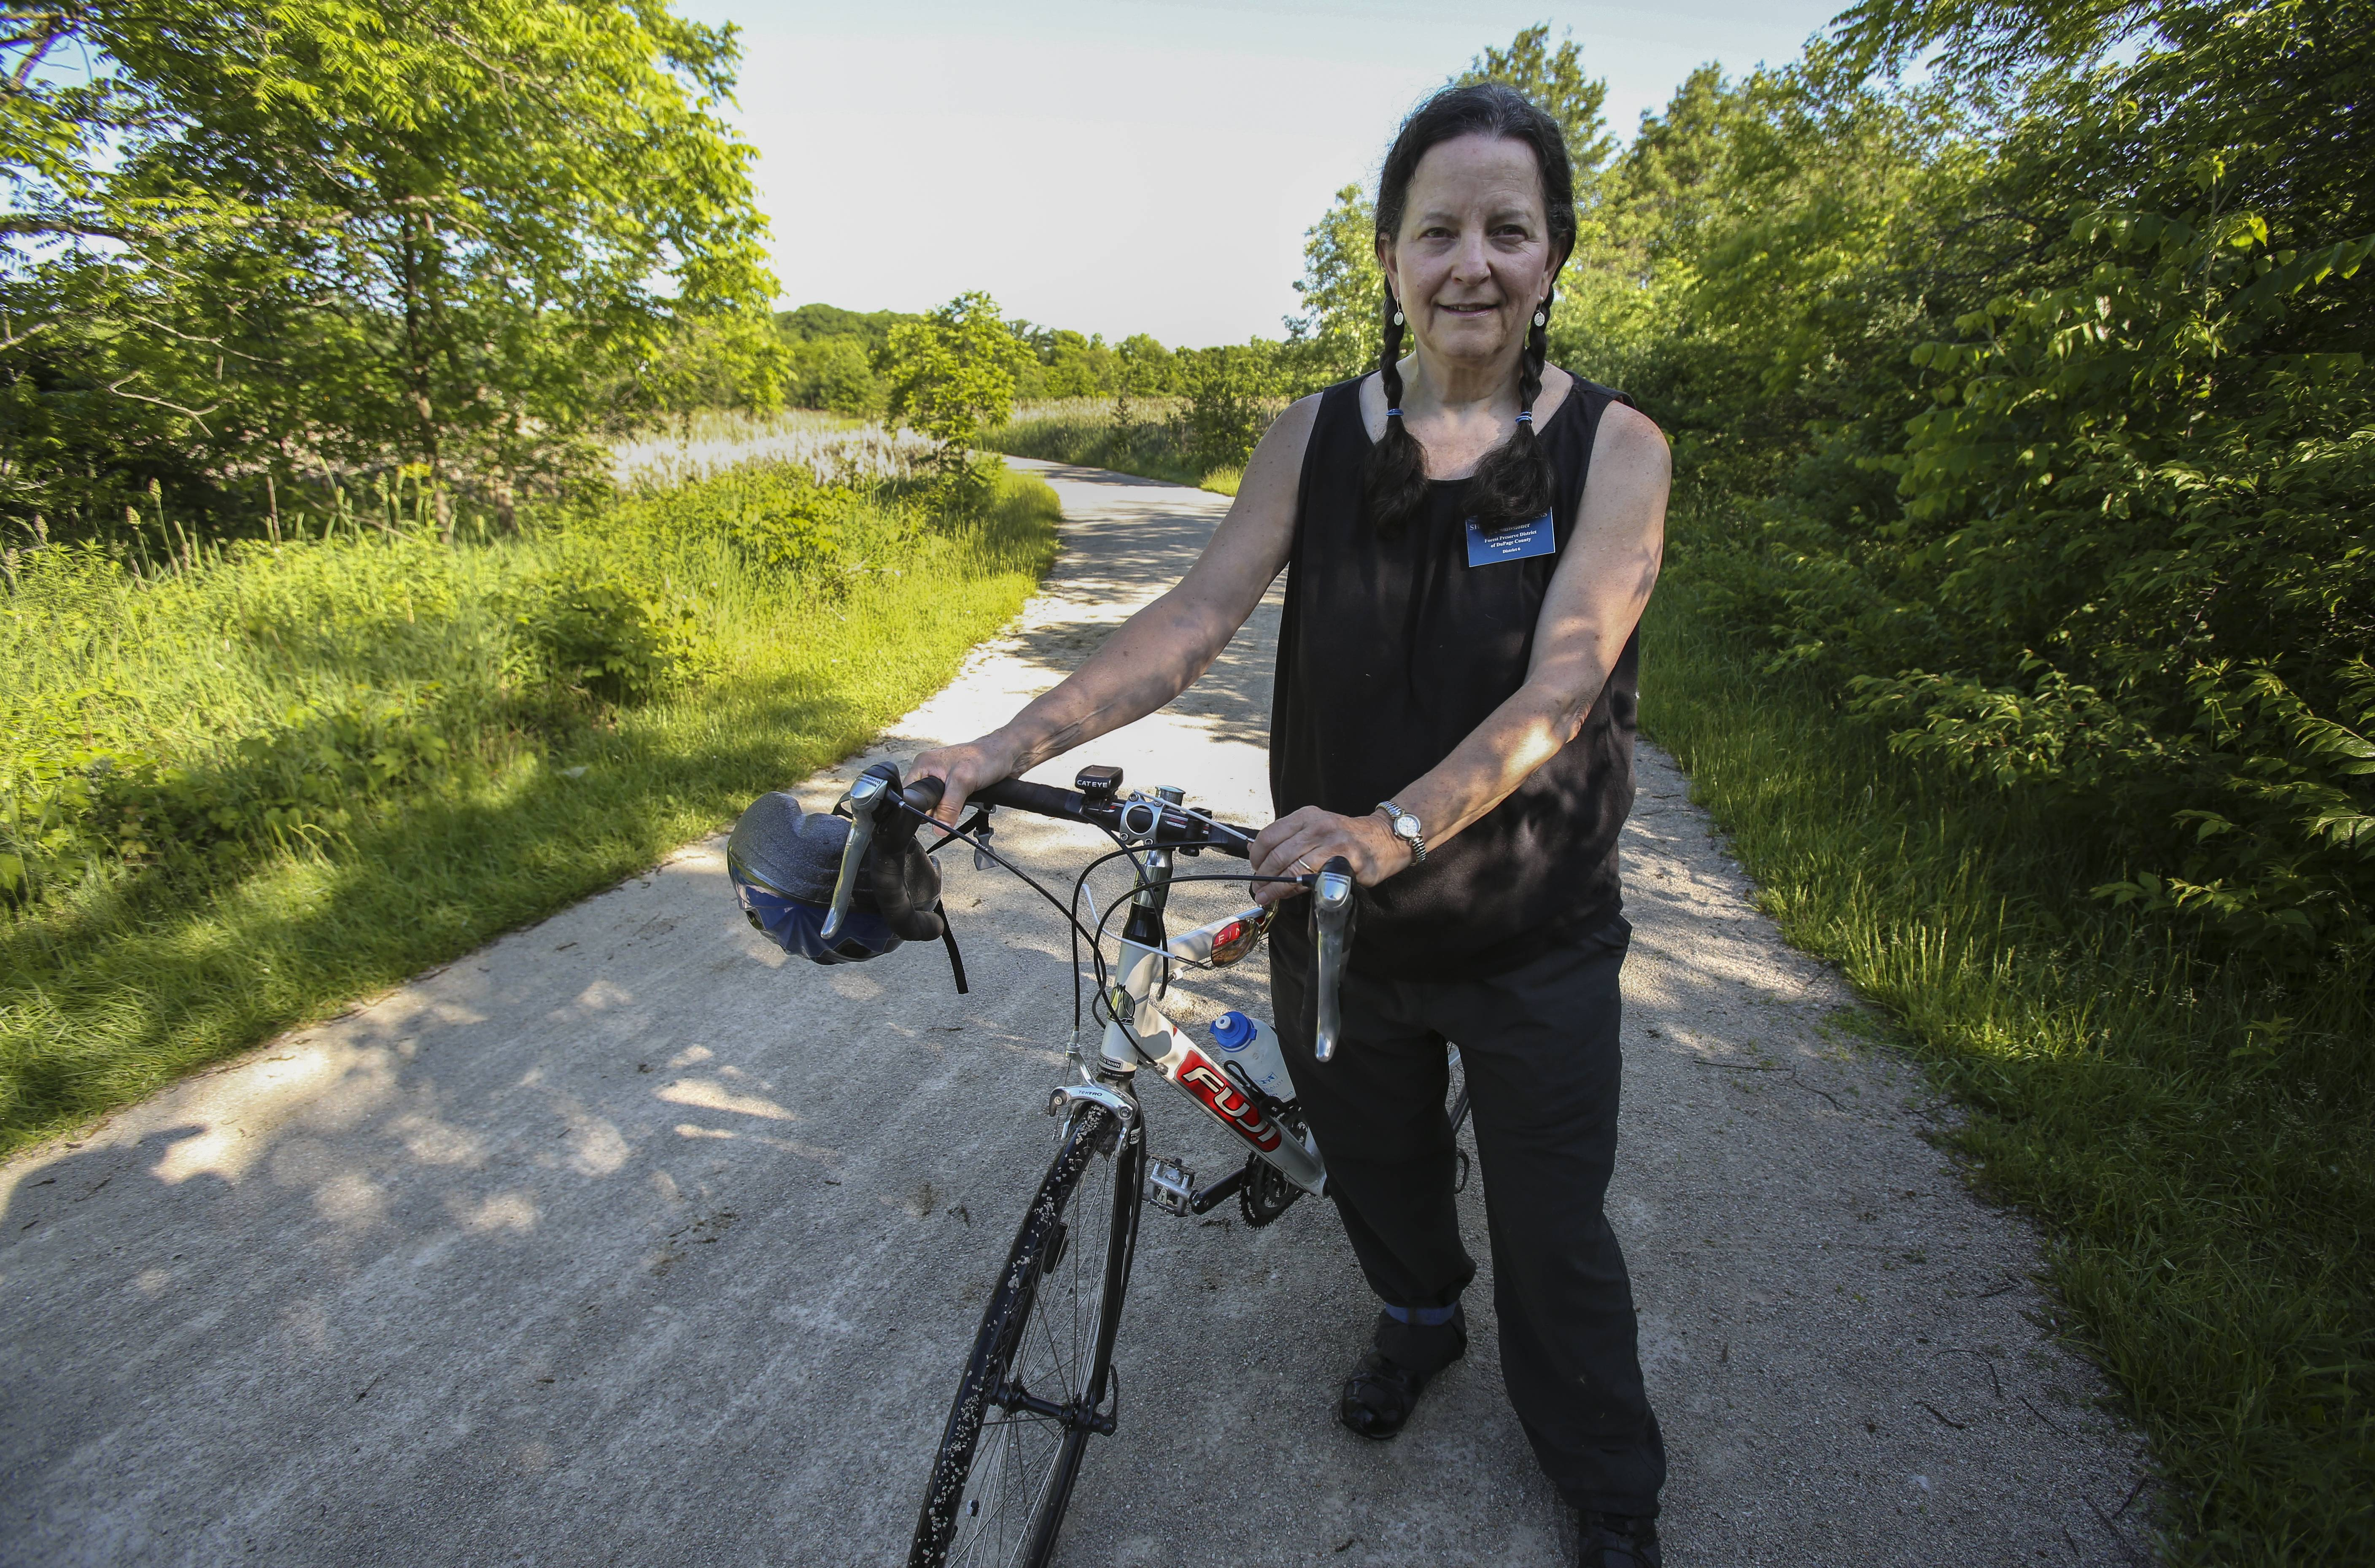 DuPage forest preserve Commissioner Shannon Burns is doing a solo bike ride around the county to help raise awareness about DuPage's extensive trail system.